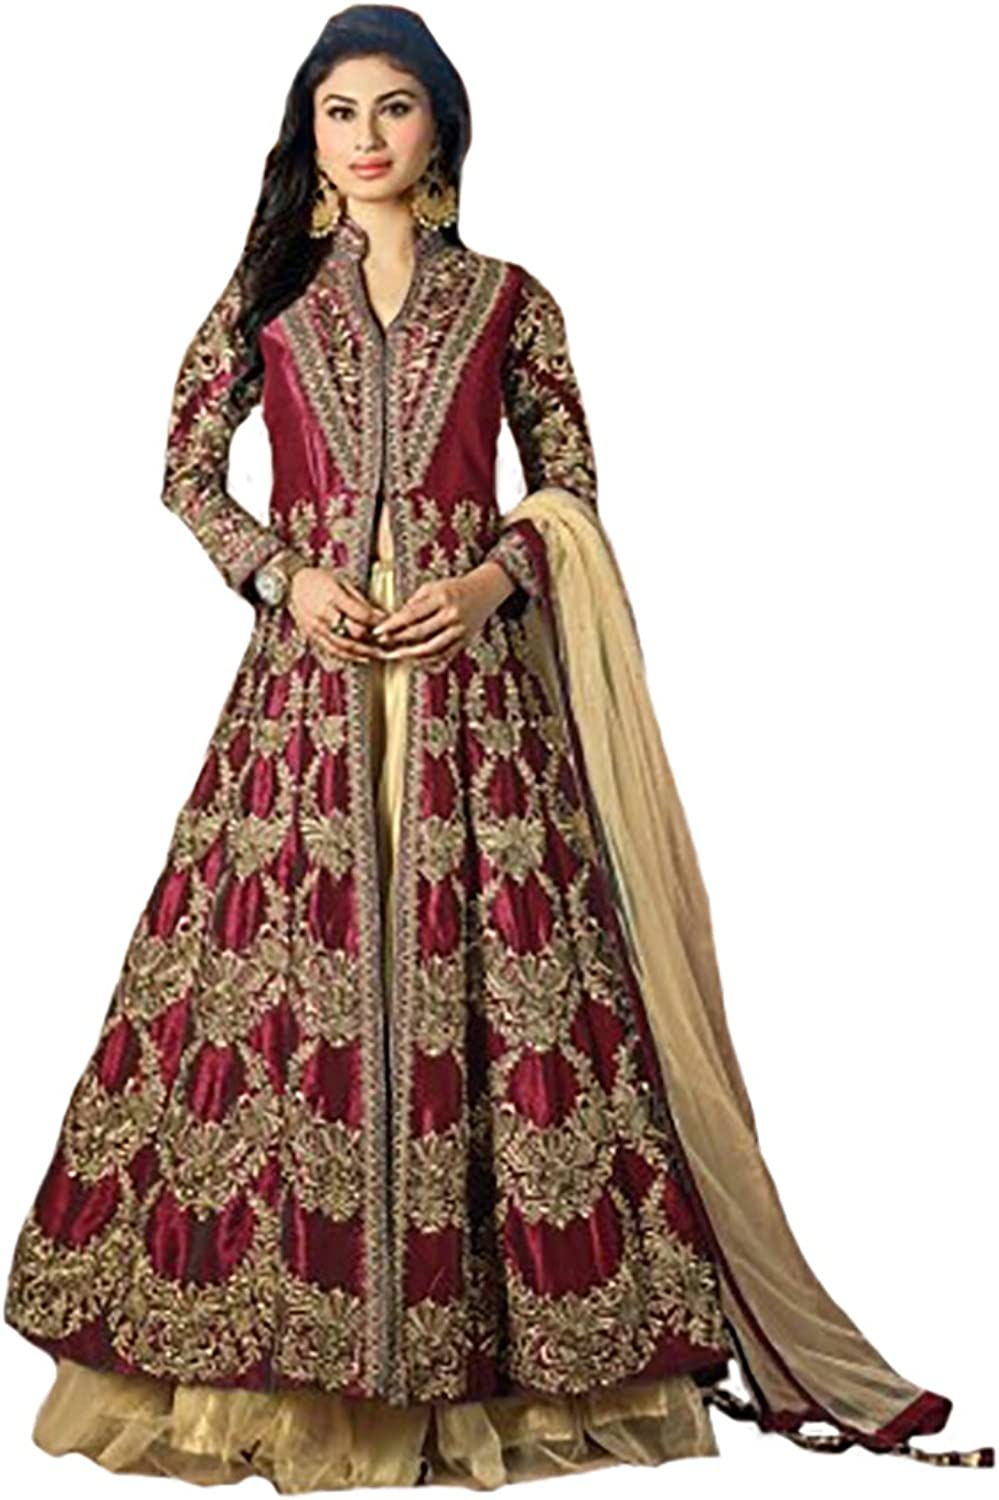 Ethnic Anarkali Salwar Kameez Suit Dupatta Ceremony Wedding Bridal